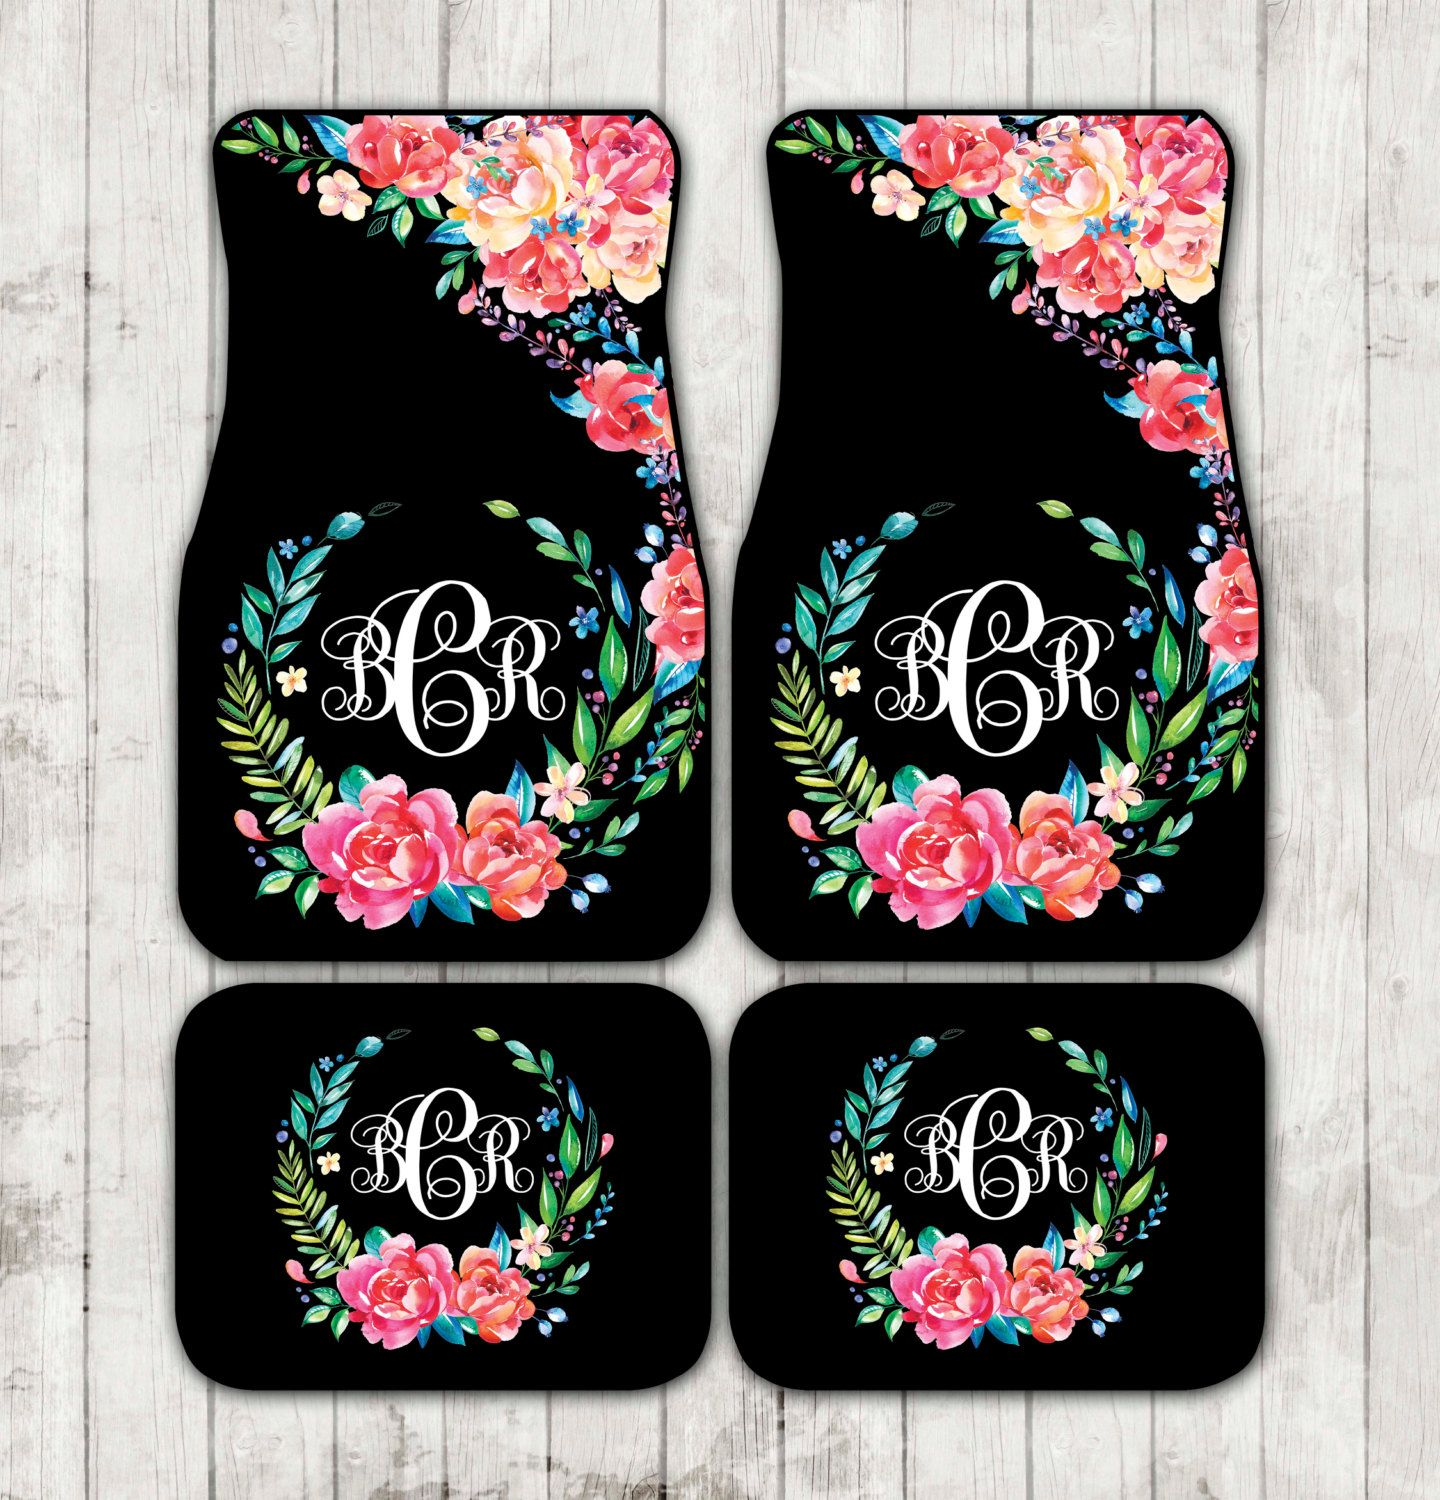 monogrammed mats for rugs of floor personalised amazon border doormat logo door and size the personalized full black outdoor business monogram cheap front custom with